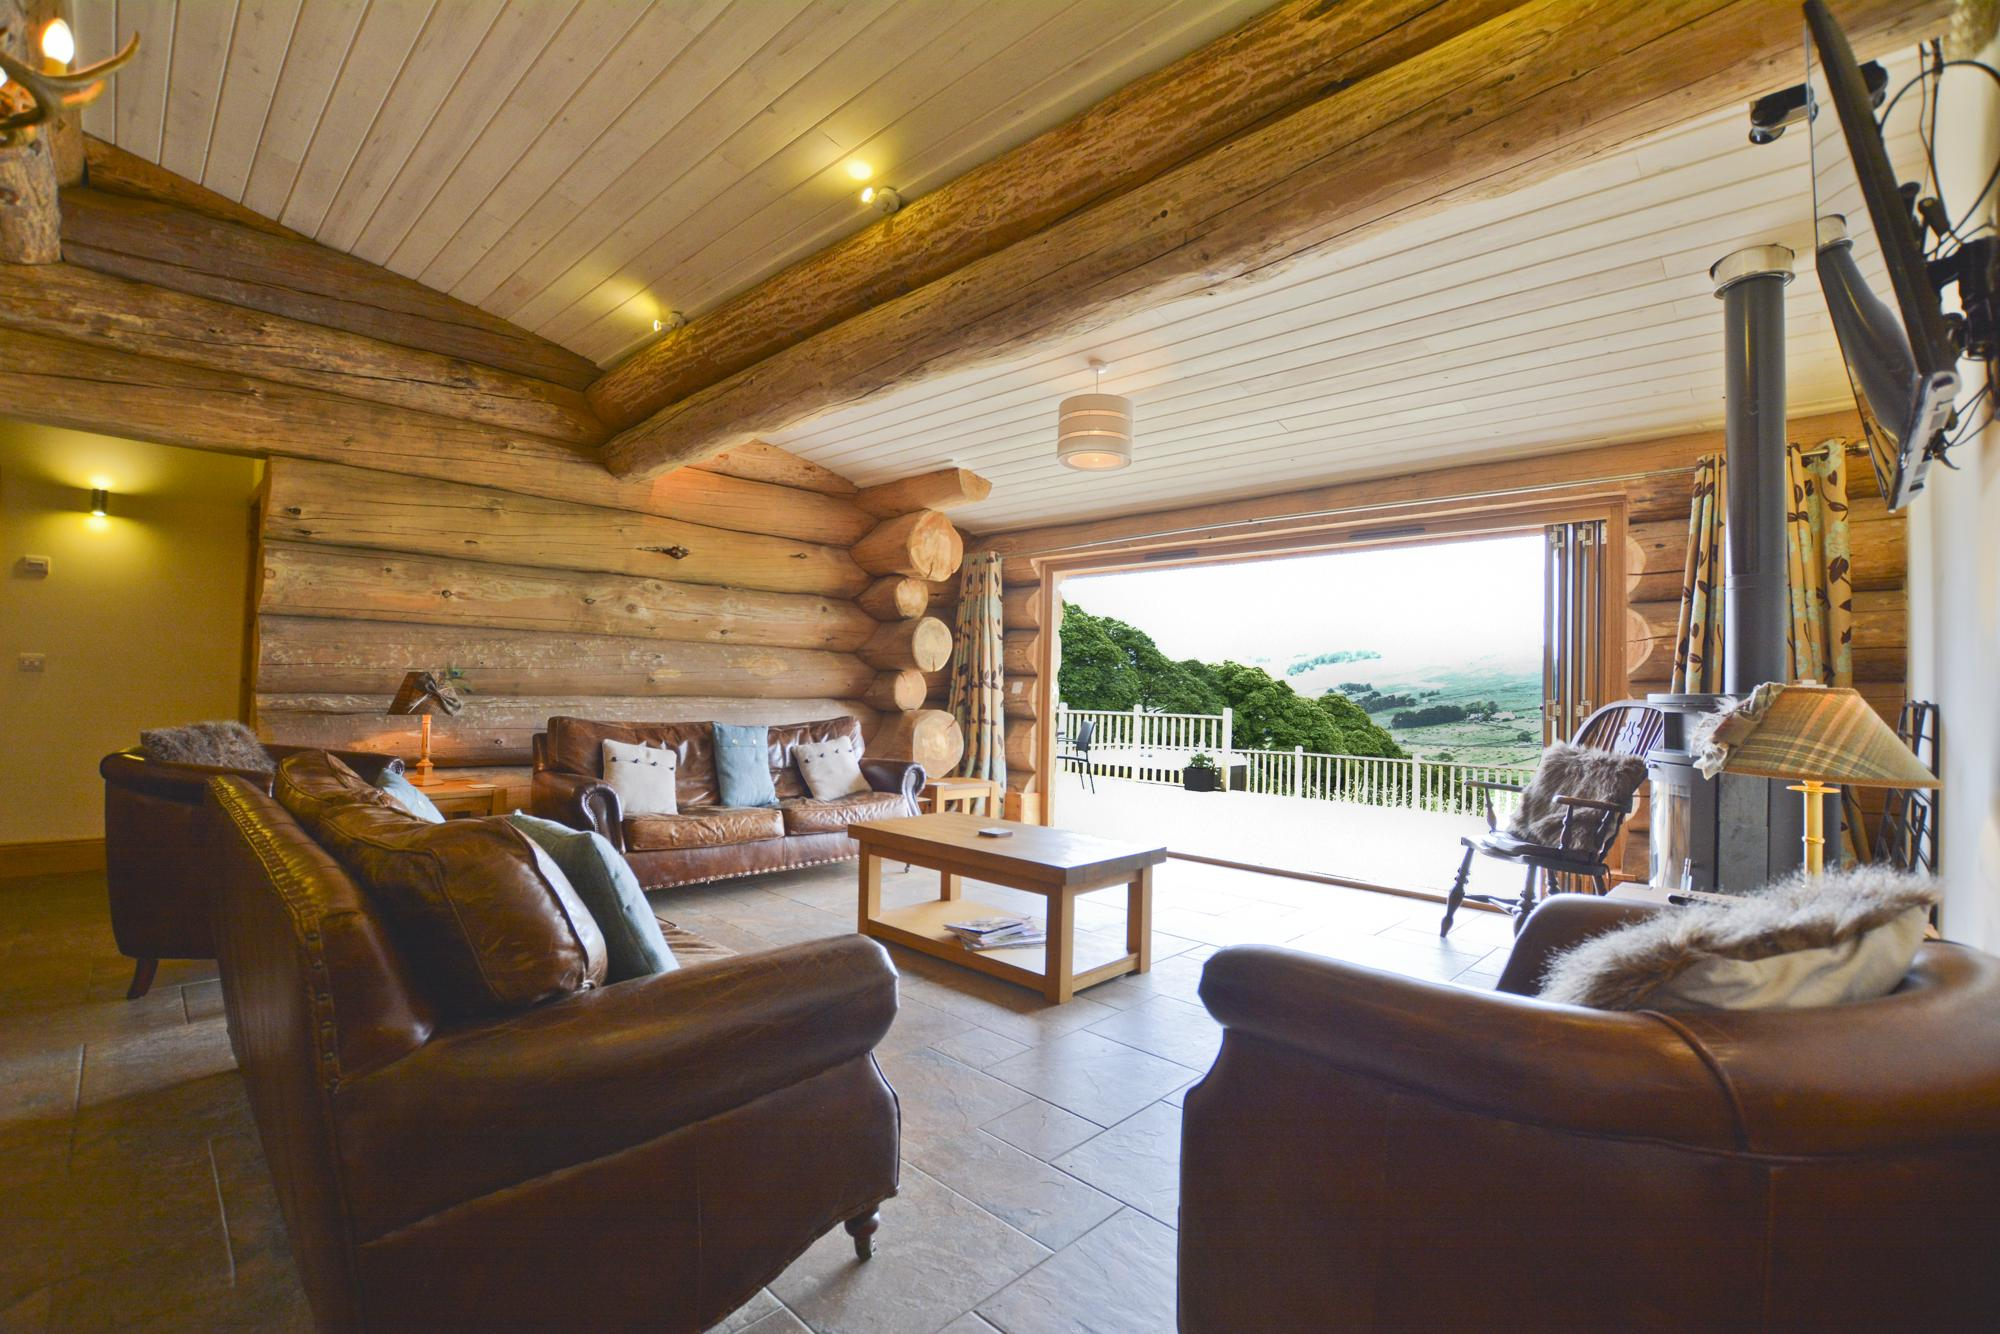 Self-Catering in Northumberland holidays at Cool Places